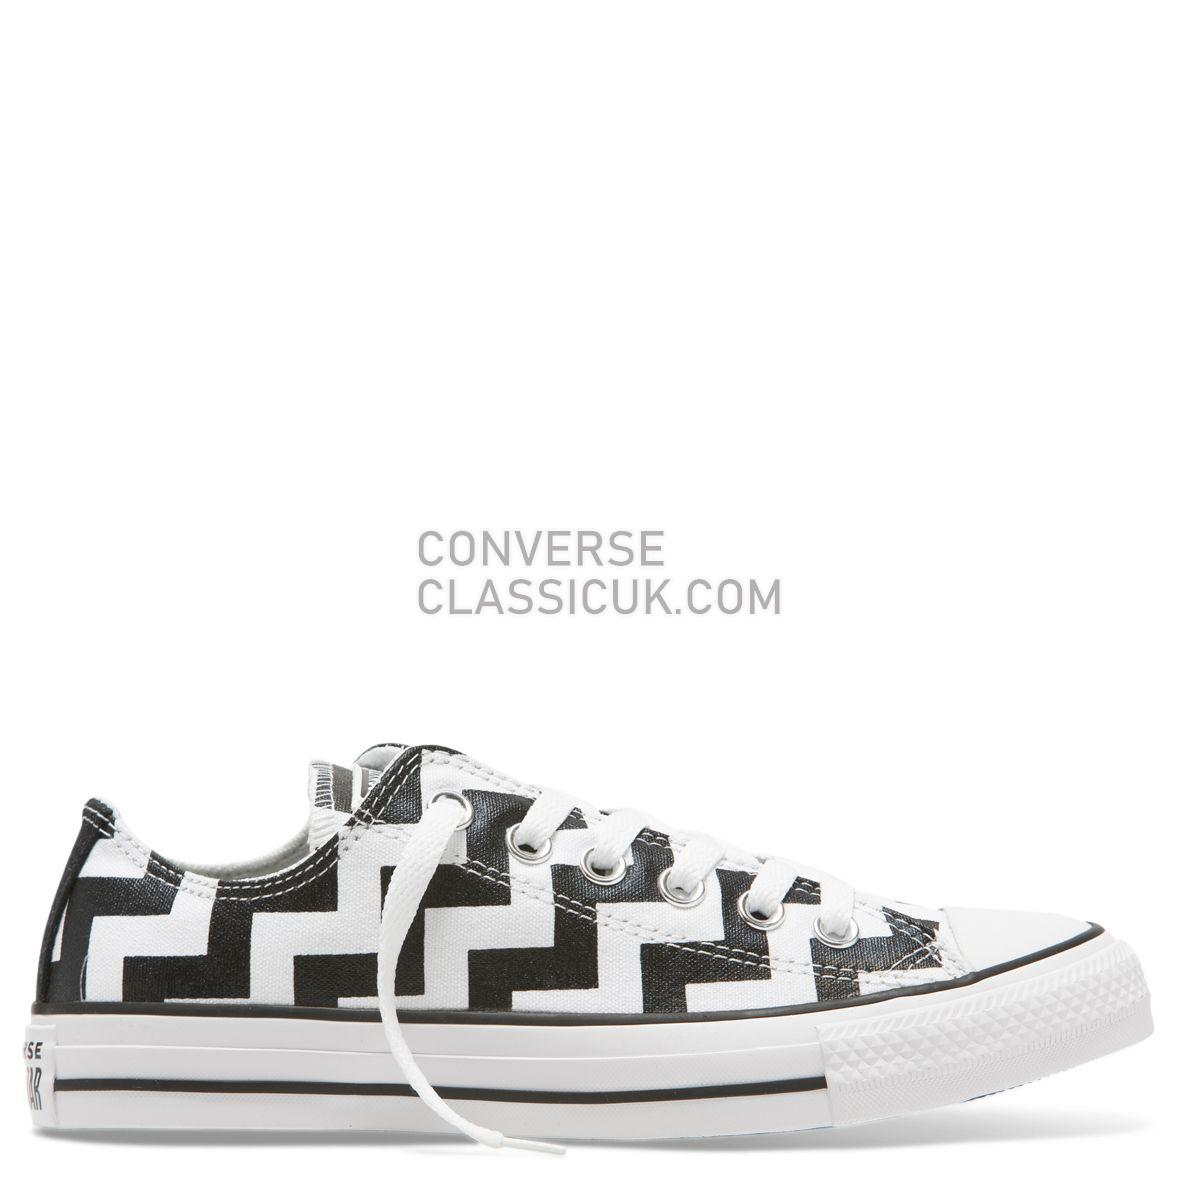 Converse Chuck Taylor All Star Glam Dunk Low Top White Womens 565438 White/Black/White Shoes